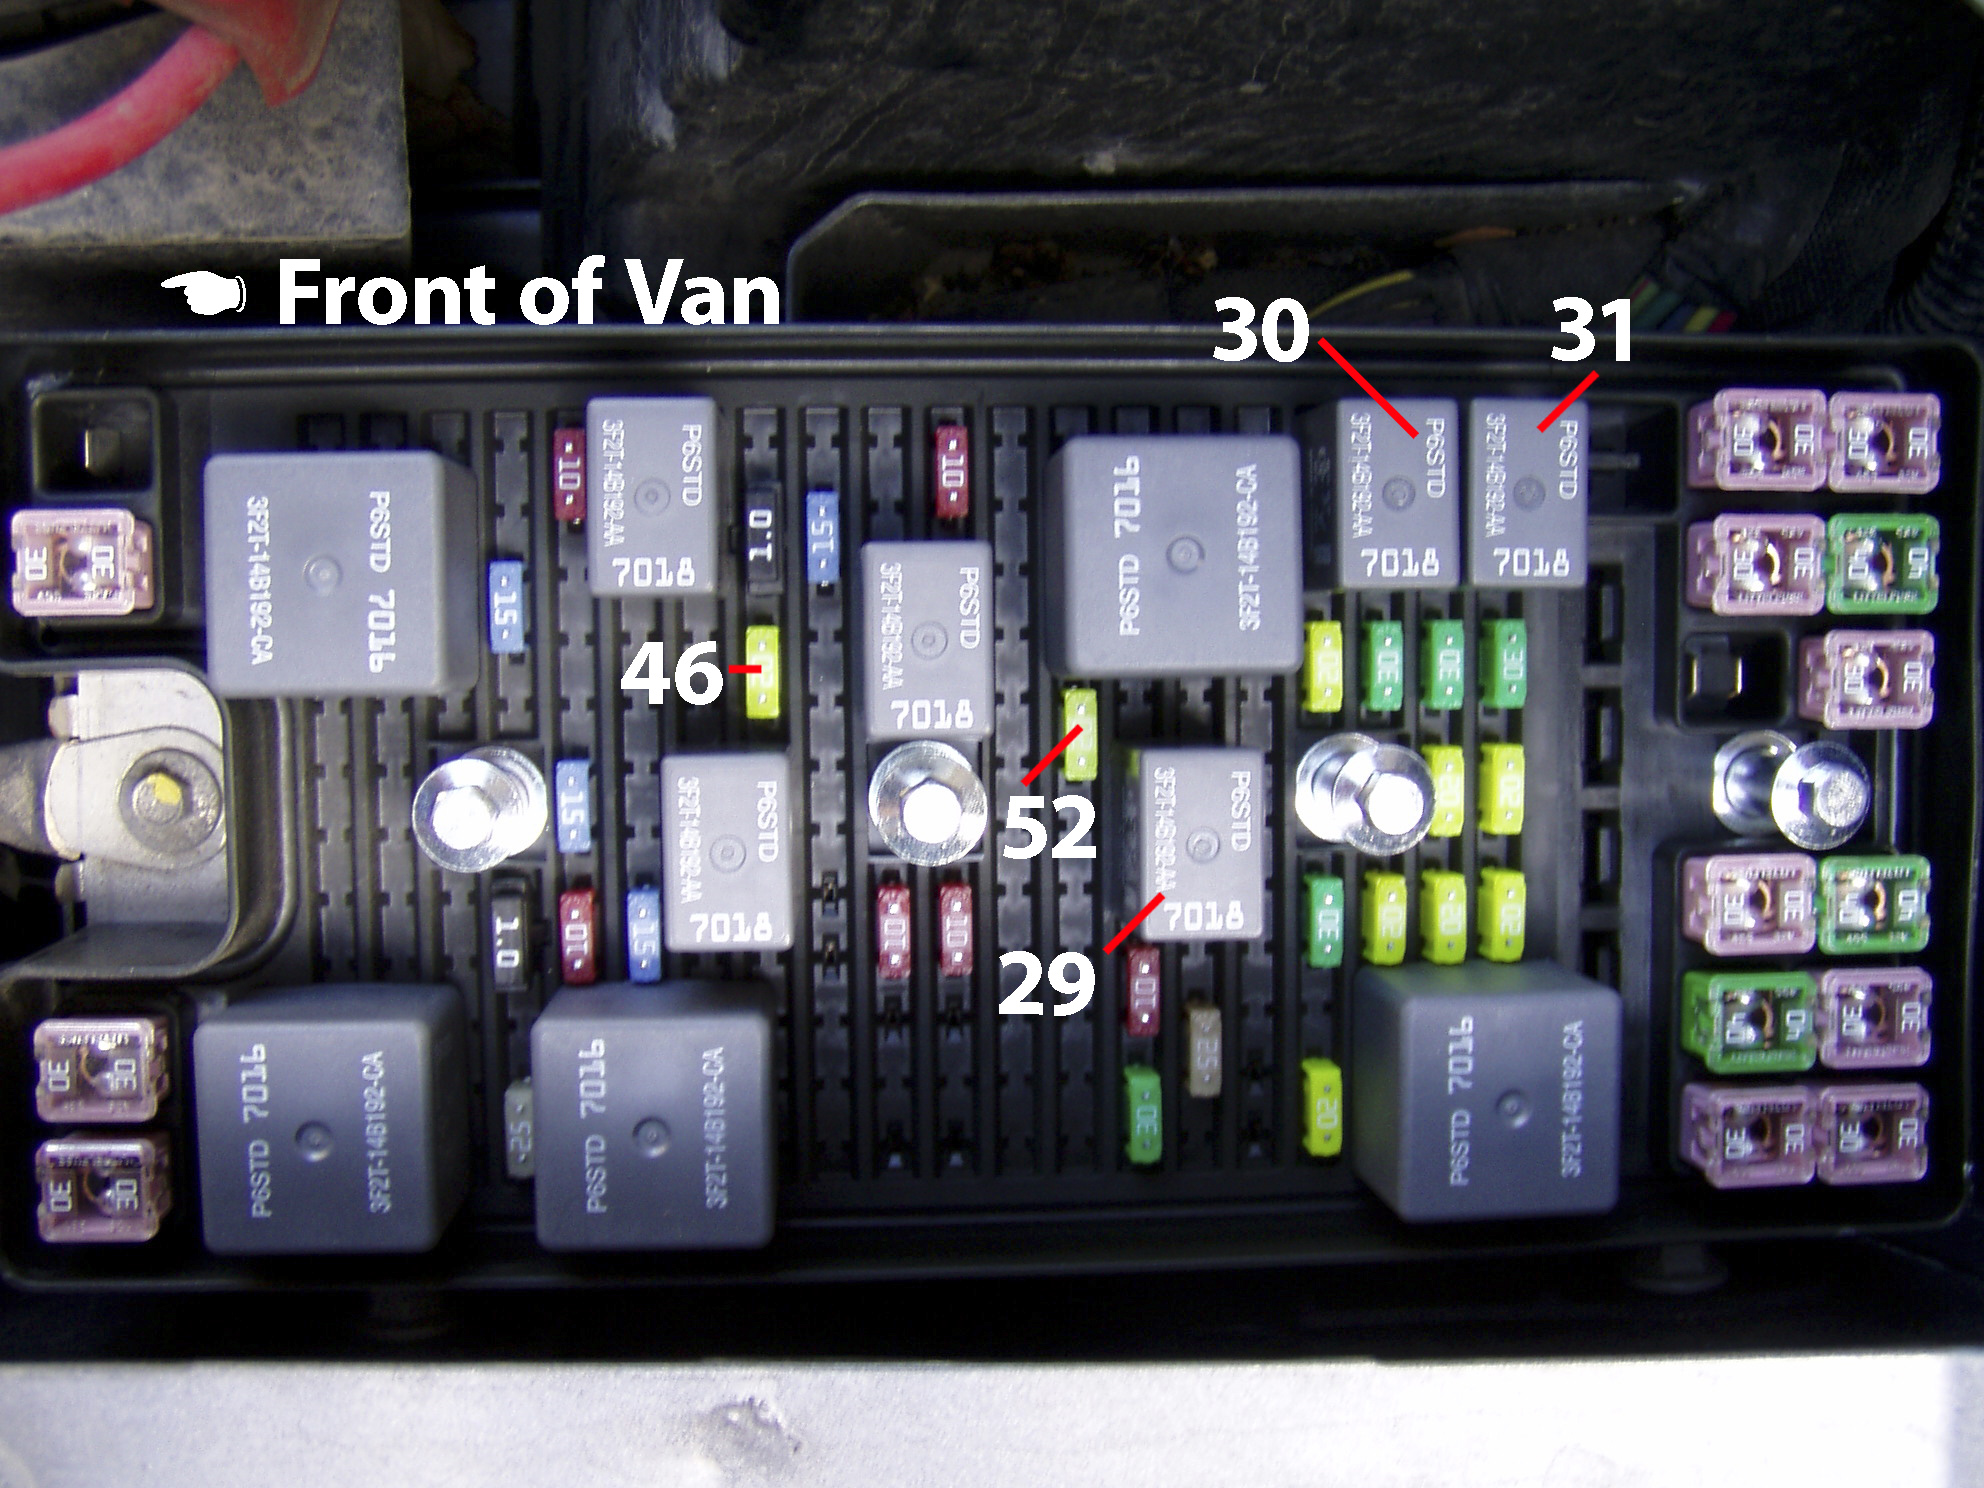 2004 ford freestar fuse panel diagram e0ef wiring diagram 2004 freestar van wiring library  e0ef wiring diagram 2004 freestar van